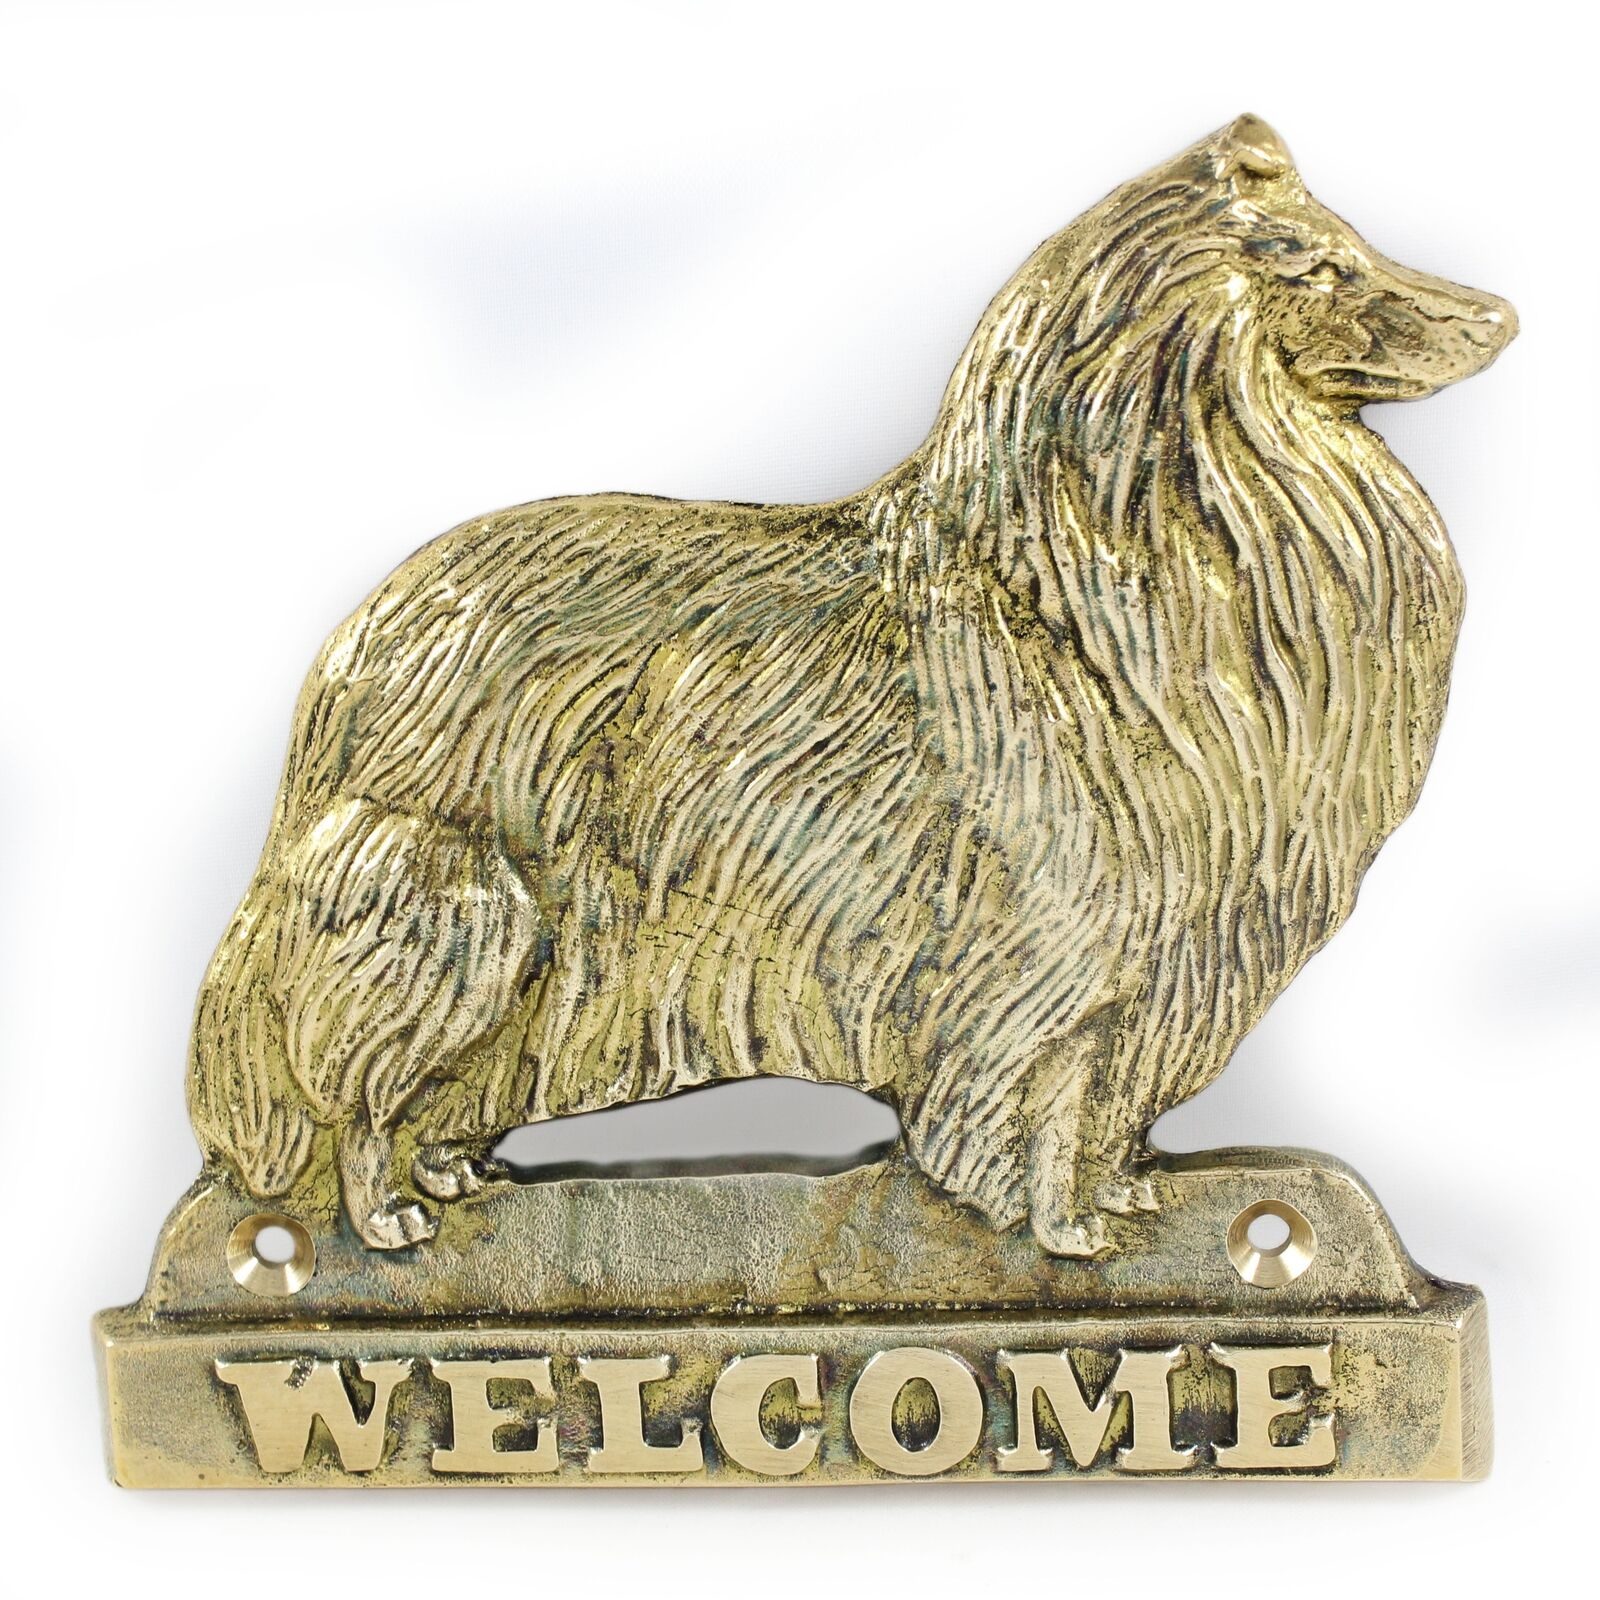 Rough Collie - brass tablet with image of a dog, Art Dog